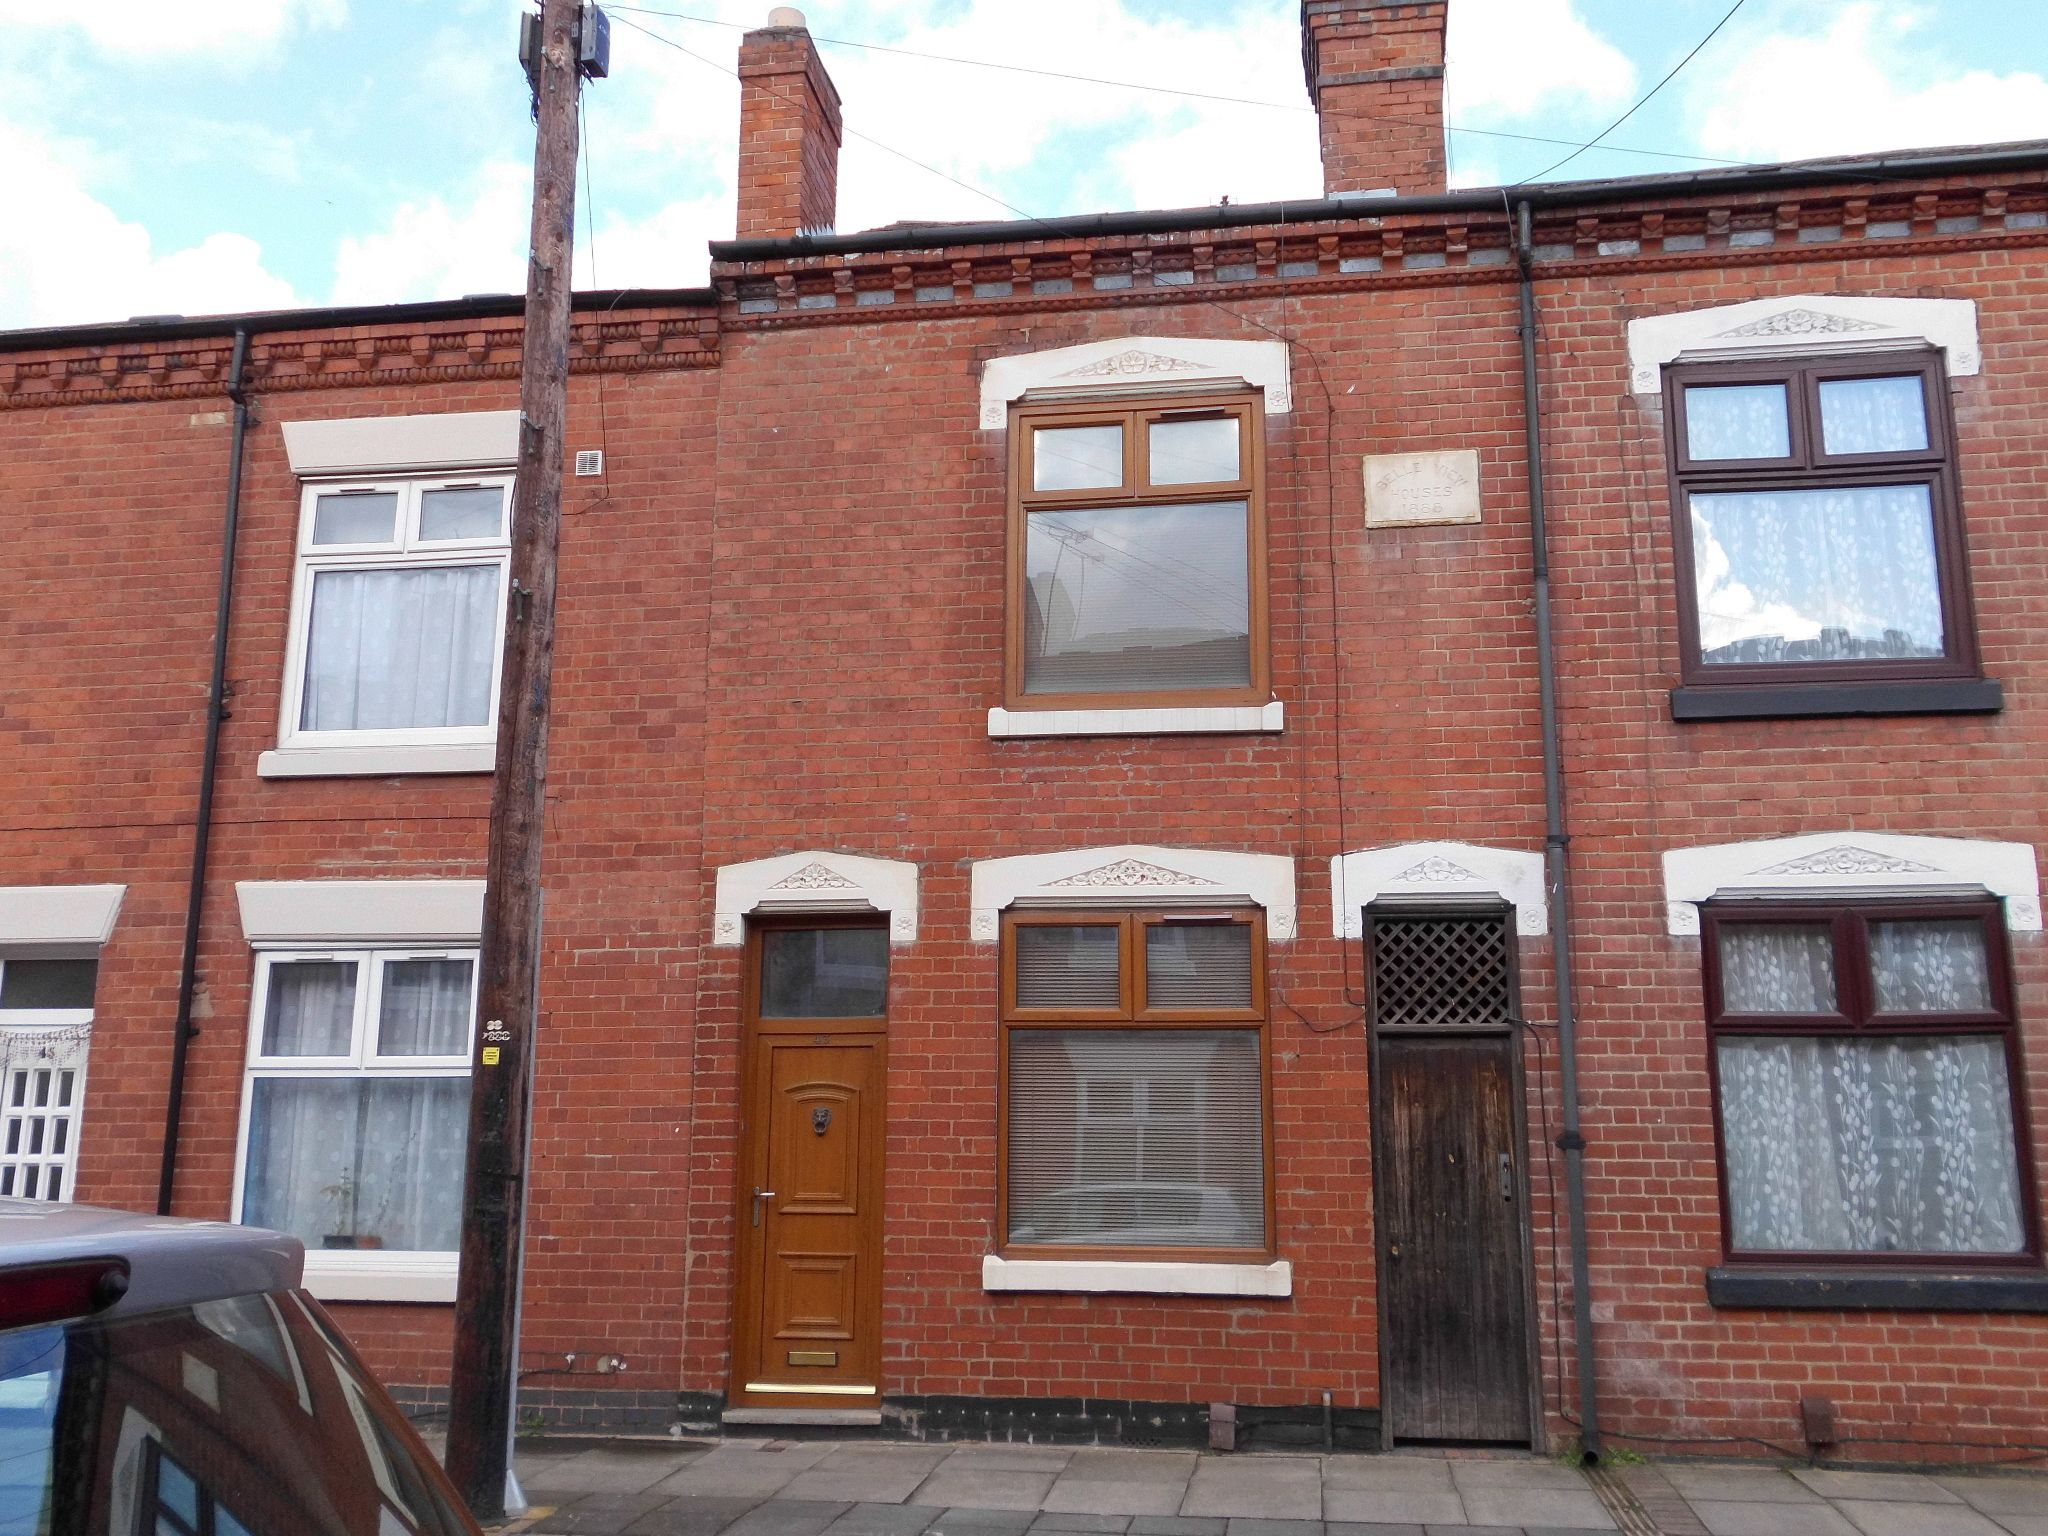 2 bedroom mid terraced house For Sale in Leicester - Photograph 1.